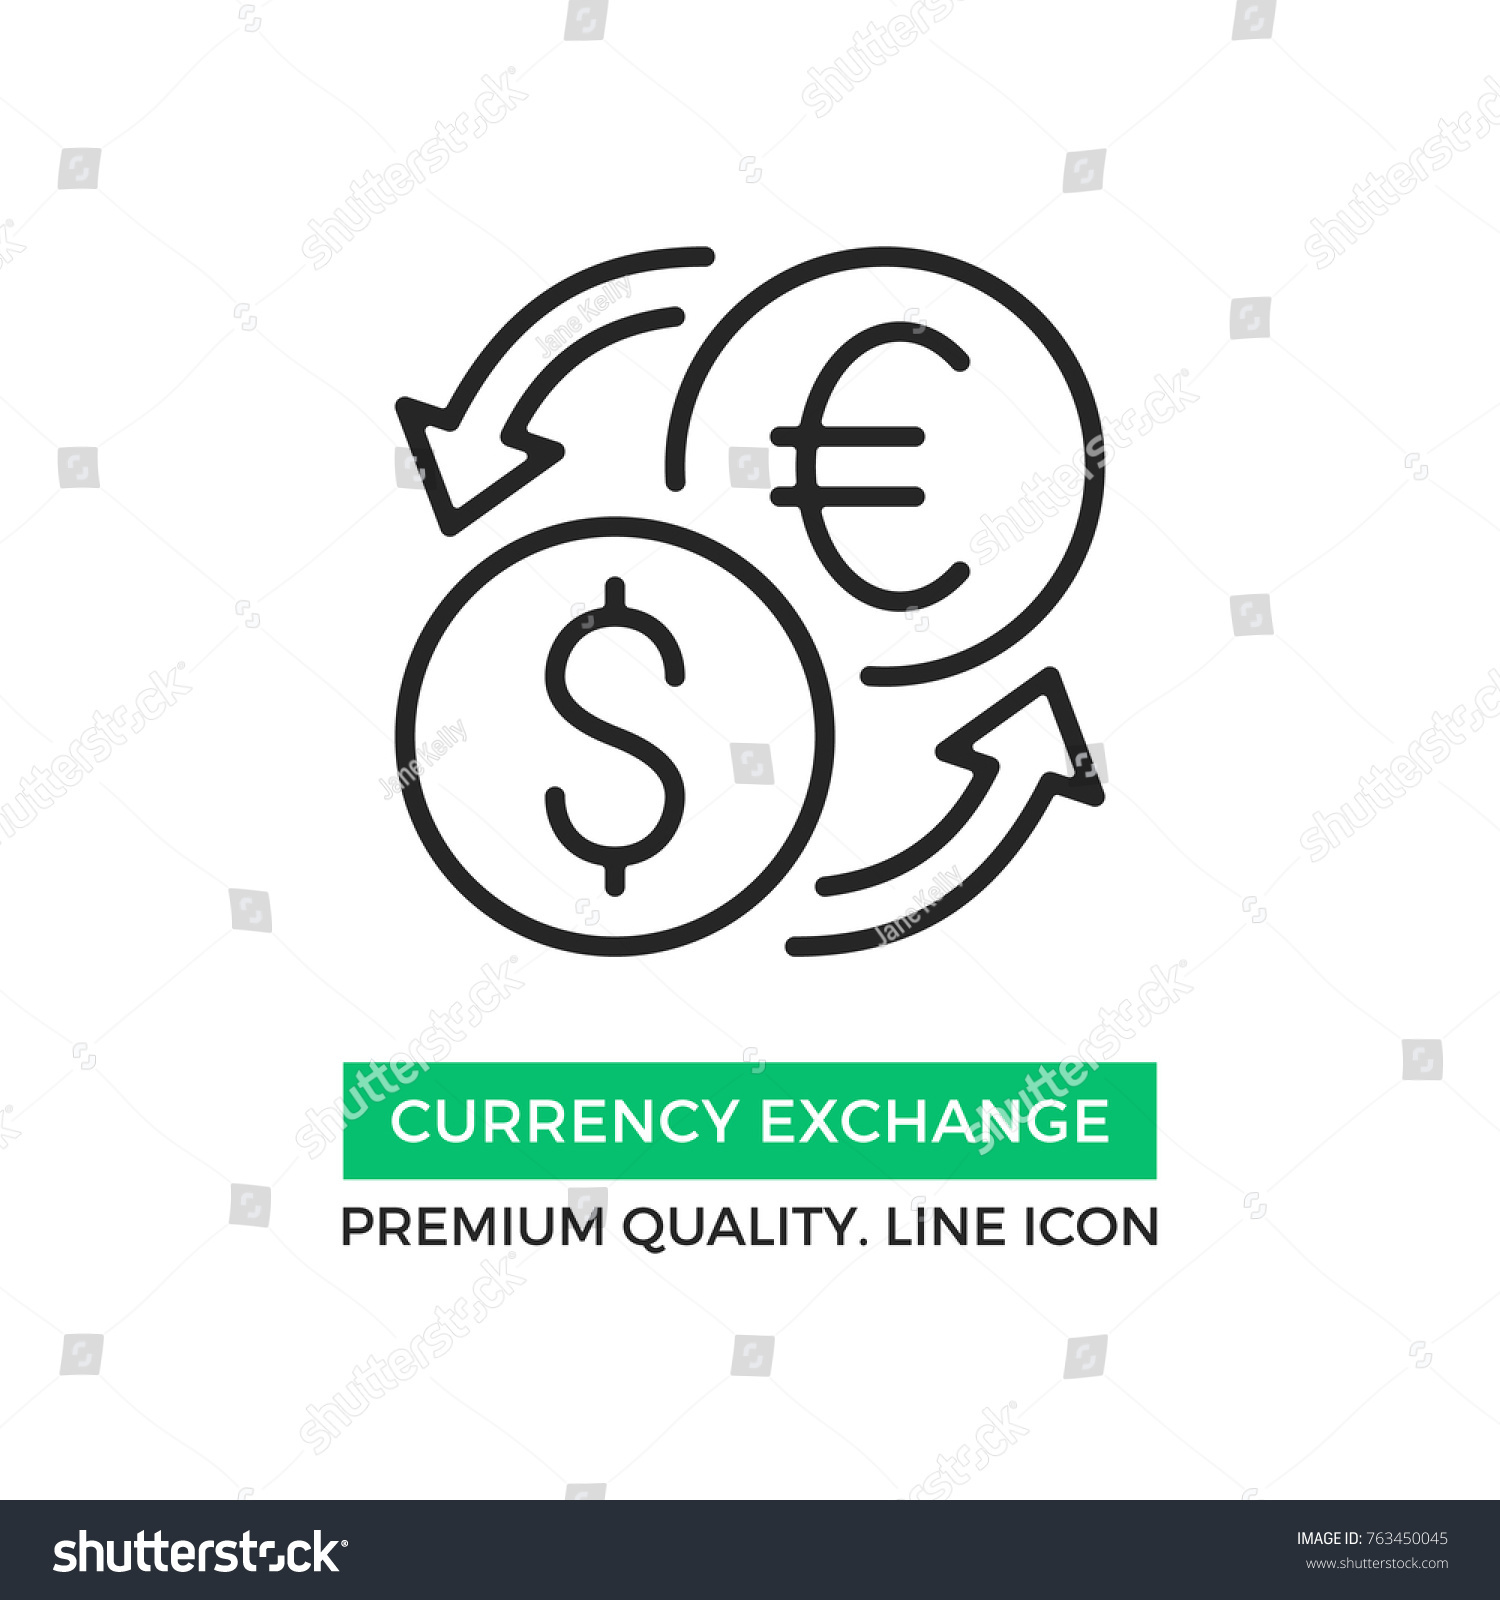 Vector currency exchange icon currency converter stock vector vector currency exchange icon currency converter foreign exchange rate concept premium quality graphic biocorpaavc